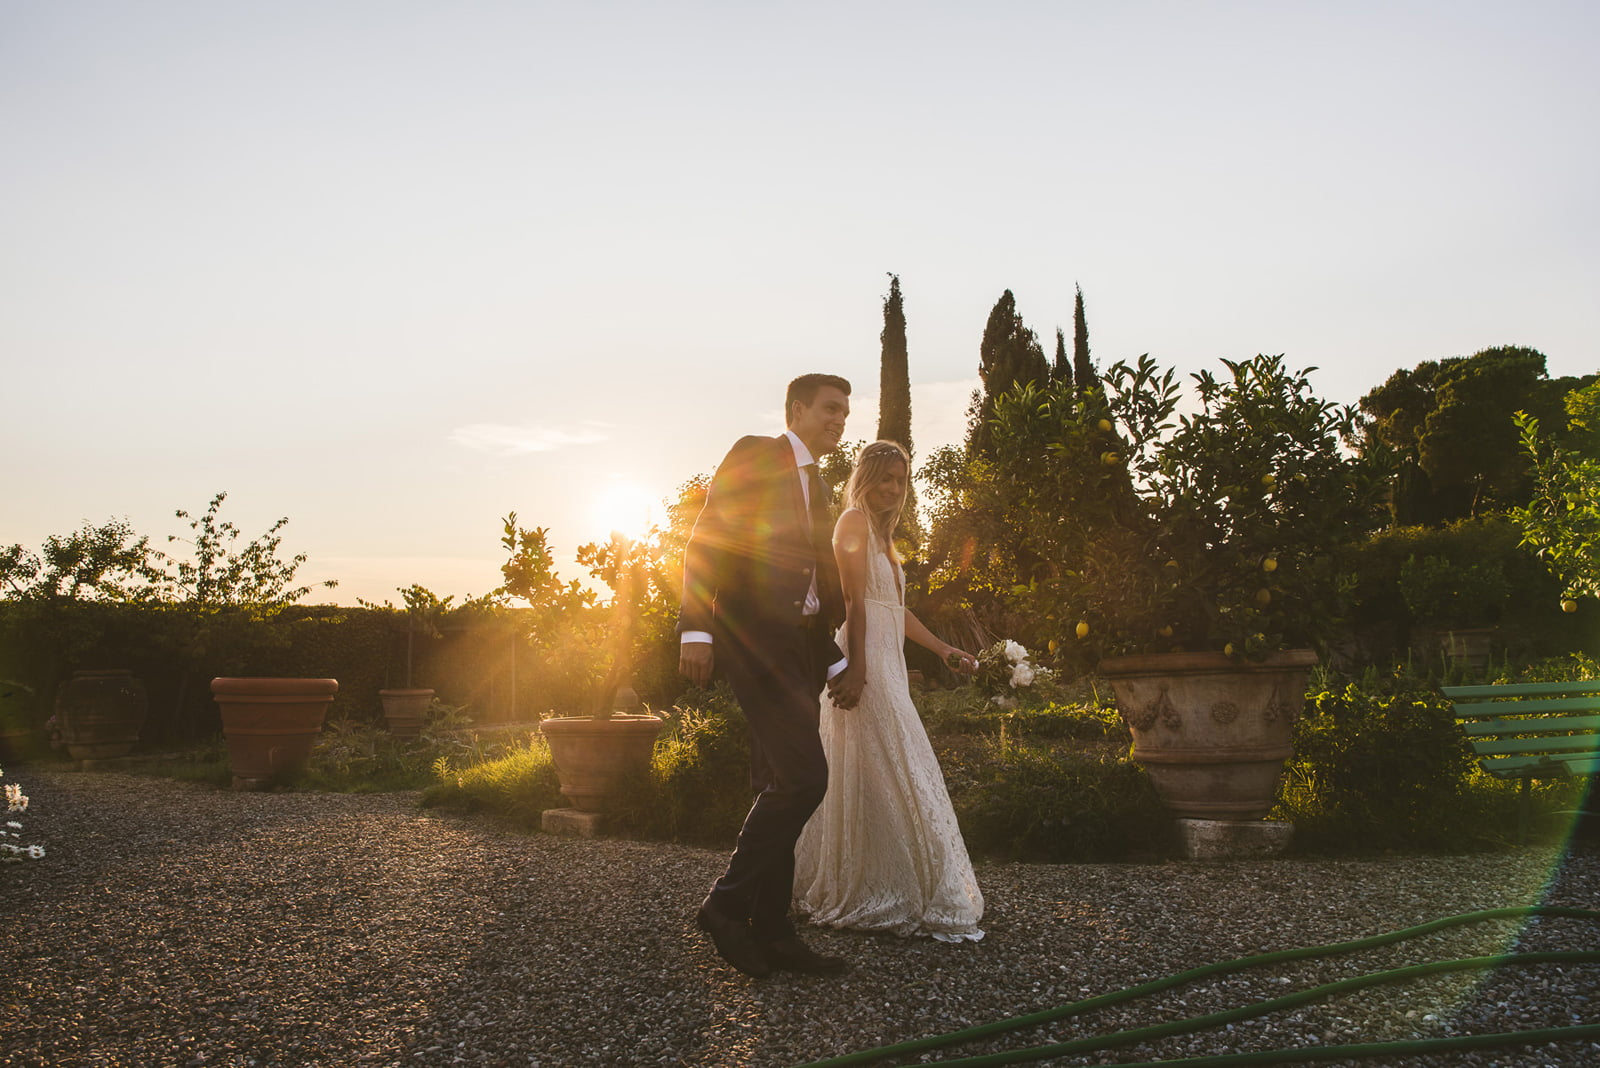 A+L Wedding at Montechiaro, Siena by Federico Pannacci 89